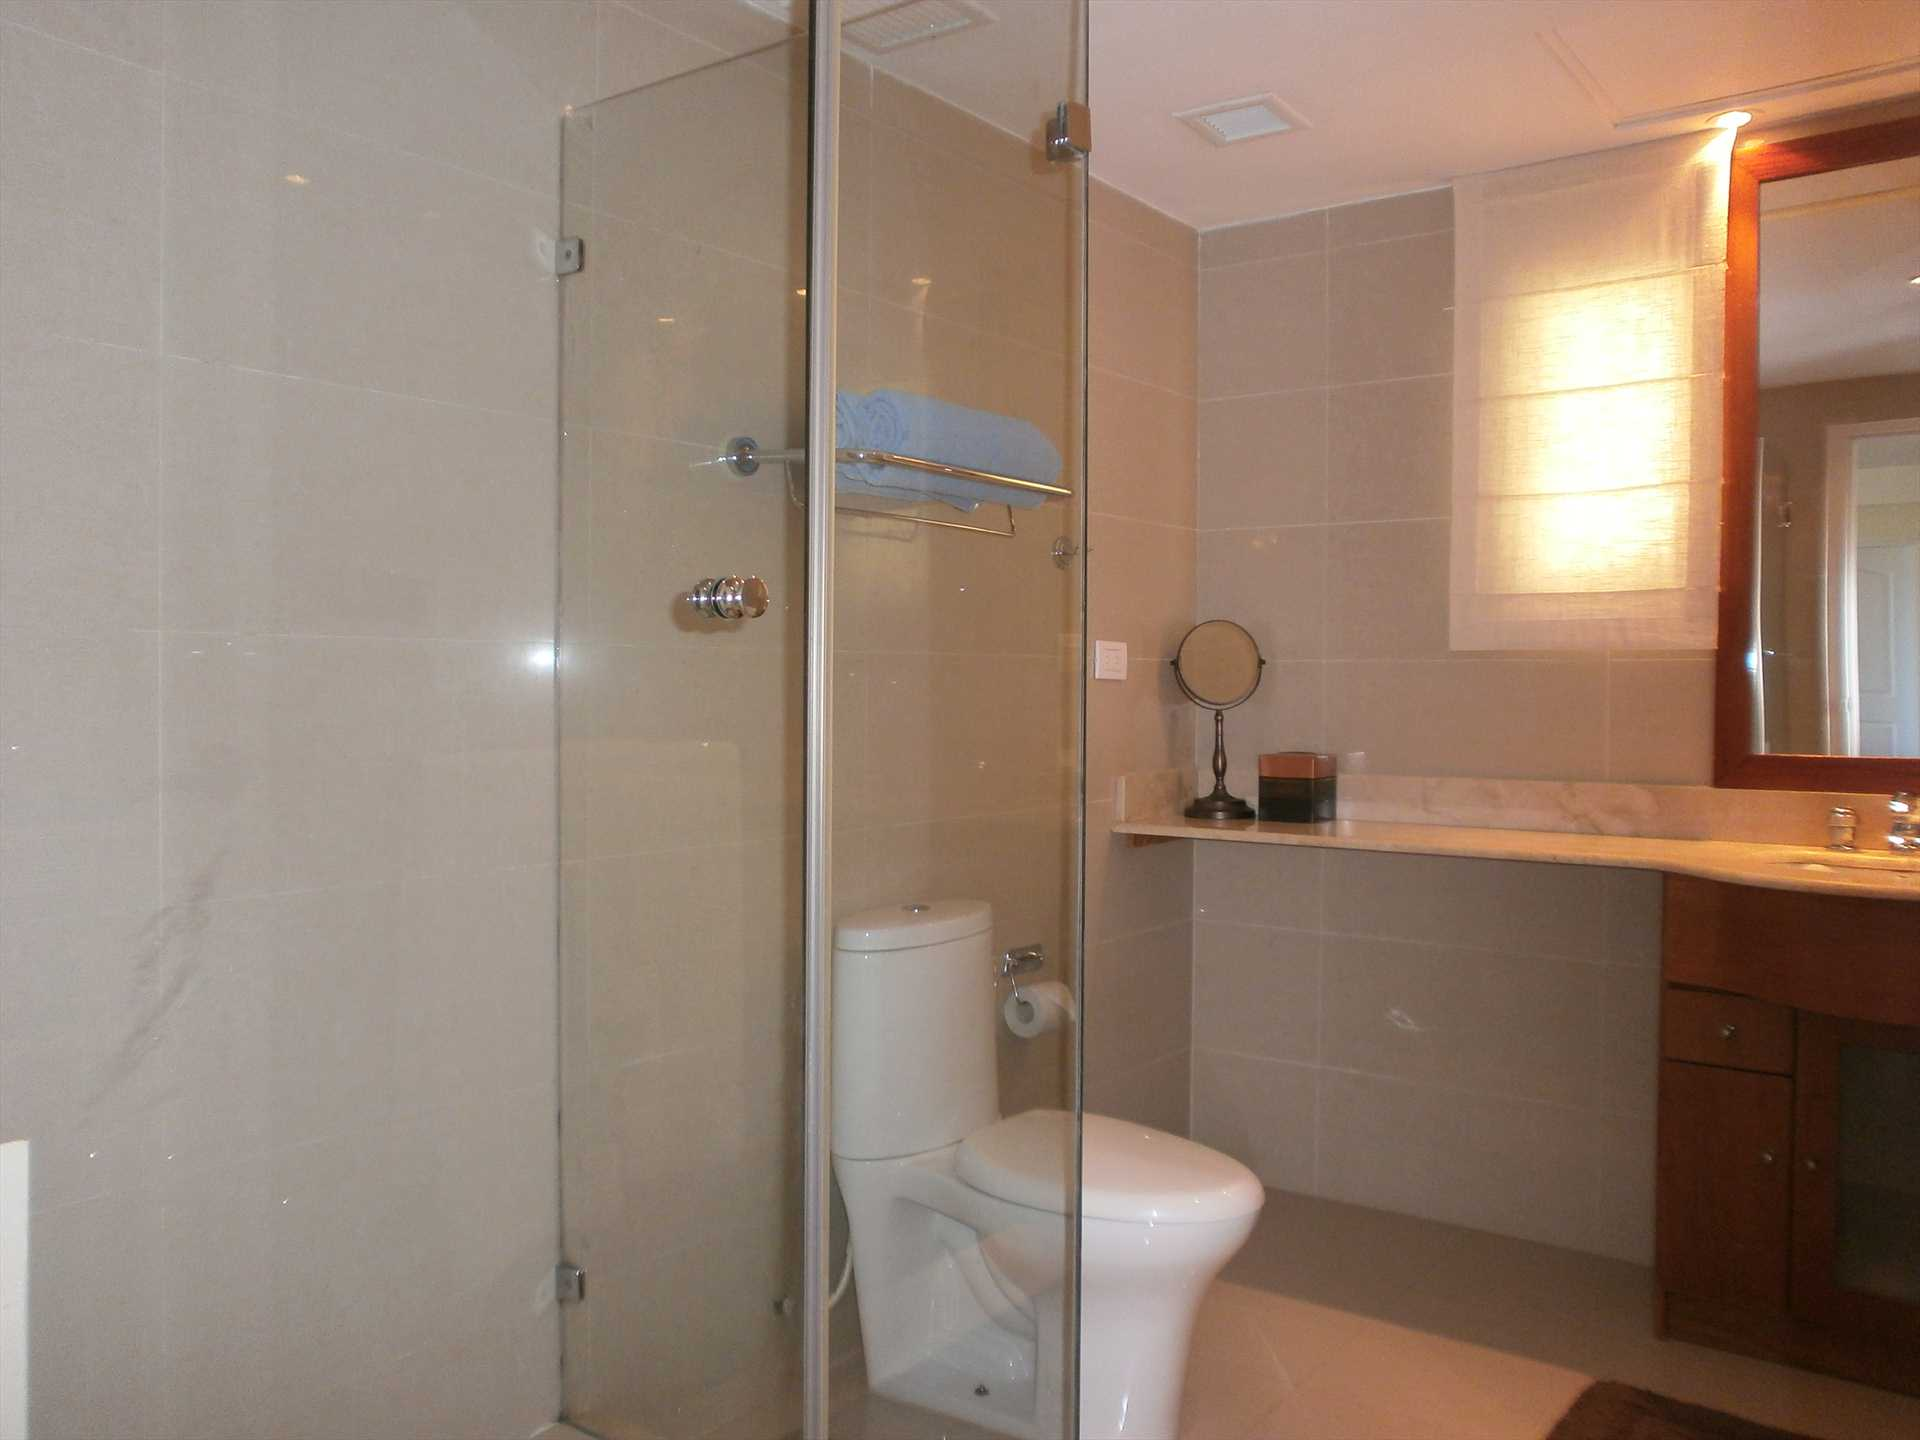 A second modern full bathroom with glass-enclosed shower area.     A second modern full bathroom with glass-enclosed shower area.